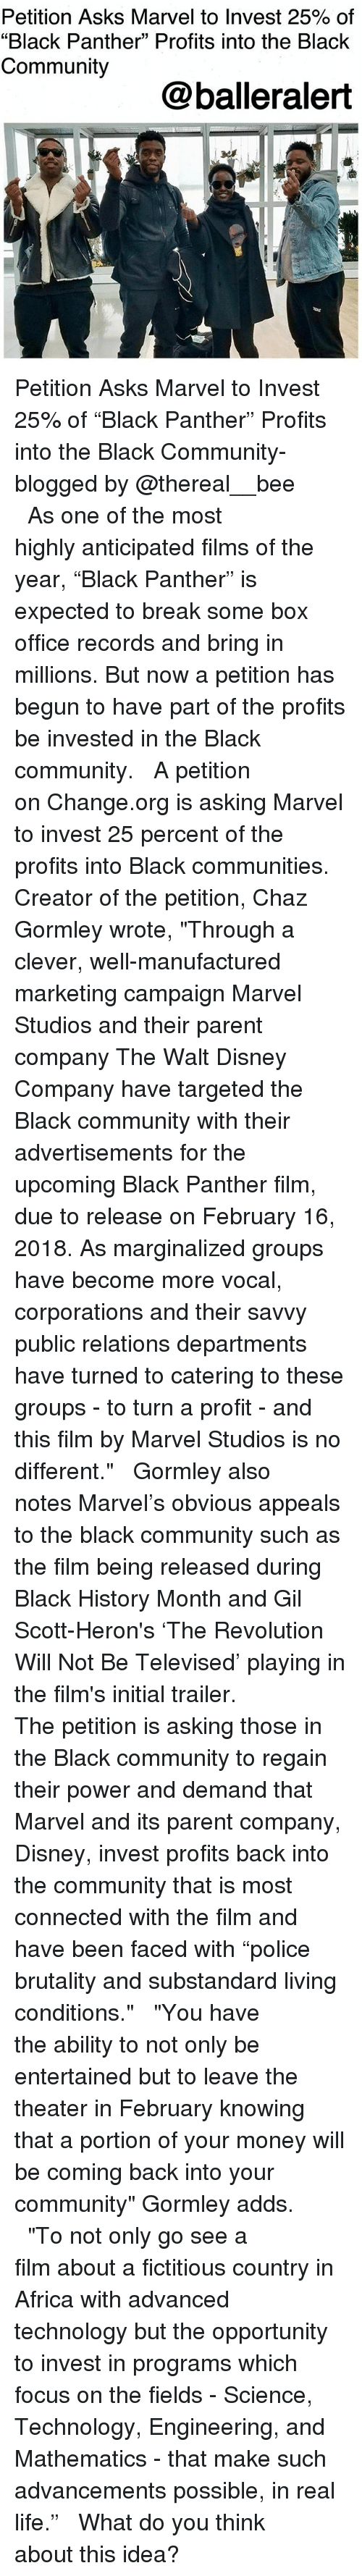 """Chaz: Petition Asks Marvel to Invest 25% of  """"Black Panther"""" Profits into the Black  Community  @balleralert Petition Asks Marvel to Invest 25% of """"Black Panther"""" Profits into the Black Community-blogged by @thereal__bee ⠀⠀⠀⠀⠀⠀⠀⠀⠀ ⠀⠀ As one of the most highly anticipated films of the year, """"Black Panther"""" is expected to break some box office records and bring in millions. But now a petition has begun to have part of the profits be invested in the Black community. ⠀⠀⠀⠀⠀⠀⠀⠀⠀ ⠀⠀ A petition on Change.org is asking Marvel to invest 25 percent of the profits into Black communities. Creator of the petition, Chaz Gormley wrote, """"Through a clever, well-manufactured marketing campaign Marvel Studios and their parent company The Walt Disney Company have targeted the Black community with their advertisements for the upcoming Black Panther film, due to release on February 16, 2018. As marginalized groups have become more vocal, corporations and their savvy public relations departments have turned to catering to these groups - to turn a profit - and this film by Marvel Studios is no different."""" ⠀⠀⠀⠀⠀⠀⠀⠀⠀ ⠀⠀ Gormley also notes Marvel's obvious appeals to the black community such as the film being released during Black History Month and Gil Scott-Heron's 'The Revolution Will Not Be Televised' playing in the film's initial trailer. ⠀⠀⠀⠀⠀⠀⠀⠀⠀ ⠀⠀ The petition is asking those in the Black community to regain their power and demand that Marvel and its parent company, Disney, invest profits back into the community that is most connected with the film and have been faced with """"police brutality and substandard living conditions."""" ⠀⠀⠀⠀⠀⠀⠀⠀⠀ ⠀⠀ """"You have the ability to not only be entertained but to leave the theater in February knowing that a portion of your money will be coming back into your community"""" Gormley adds. ⠀⠀⠀⠀⠀⠀⠀⠀⠀ ⠀⠀ """"To not only go see a film about a fictitious country in Africa with advanced technology but the opportunity to invest in programs which focus on the fields - Sci"""